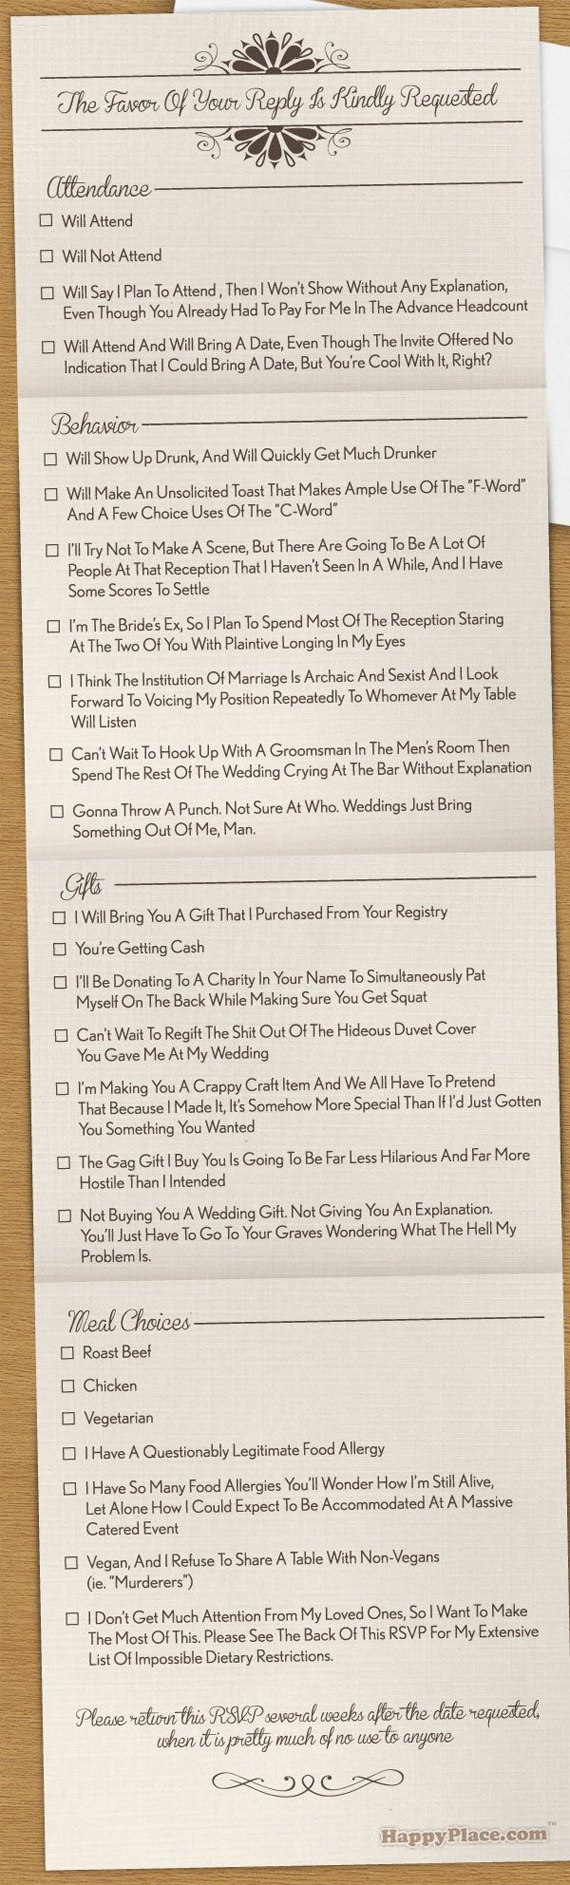 Wedding Gift List Next : Wording No Wred Gifts Wedding. Honeymoon Wedding Fund Poem. Wedding ...